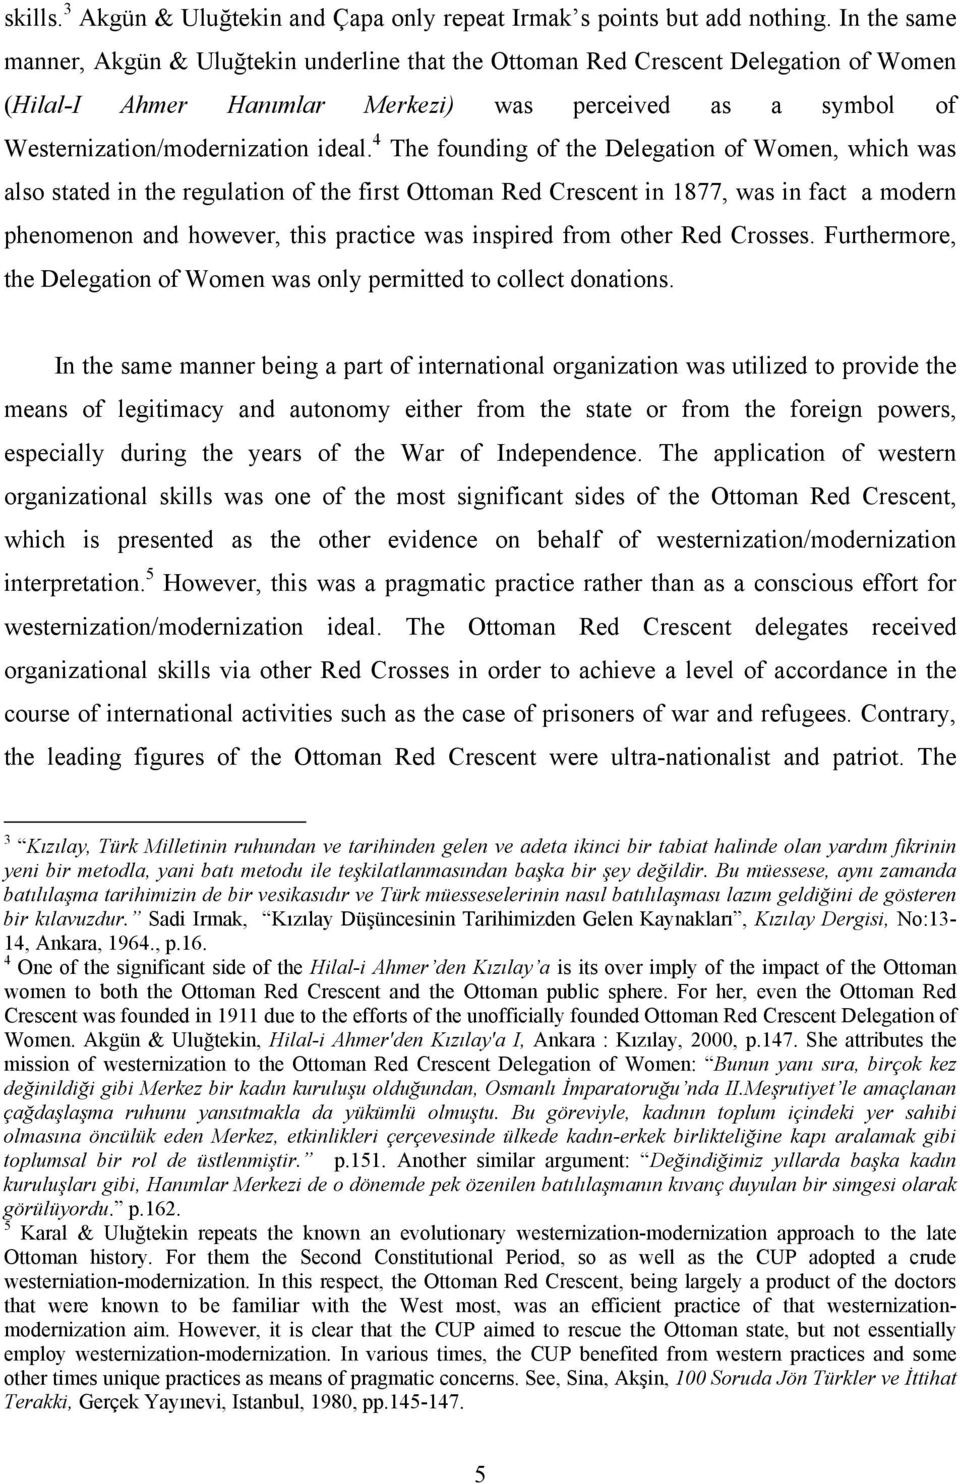 4 The founding of the Delegation of Women, which was also stated in the regulation of the first Ottoman Red Crescent in 1877, was in fact a modern phenomenon and however, this practice was inspired